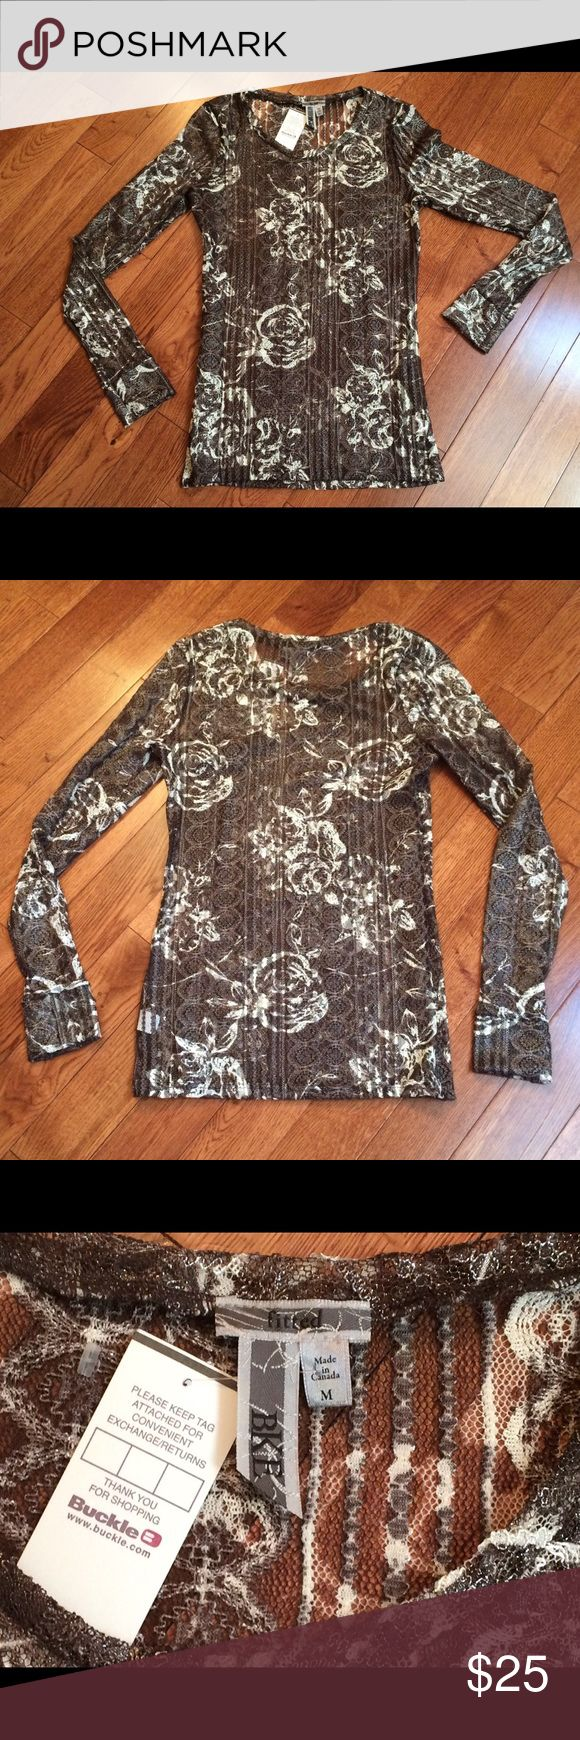 BKE Fitted Lace Top from Buckle BKE Fitted Black & White Lace Top  From The Buckle Store. Women's Size Medium but Fits More Like a Small. New With Tags. Gorgeous Top for a Night Out! BKE Tops Blouses